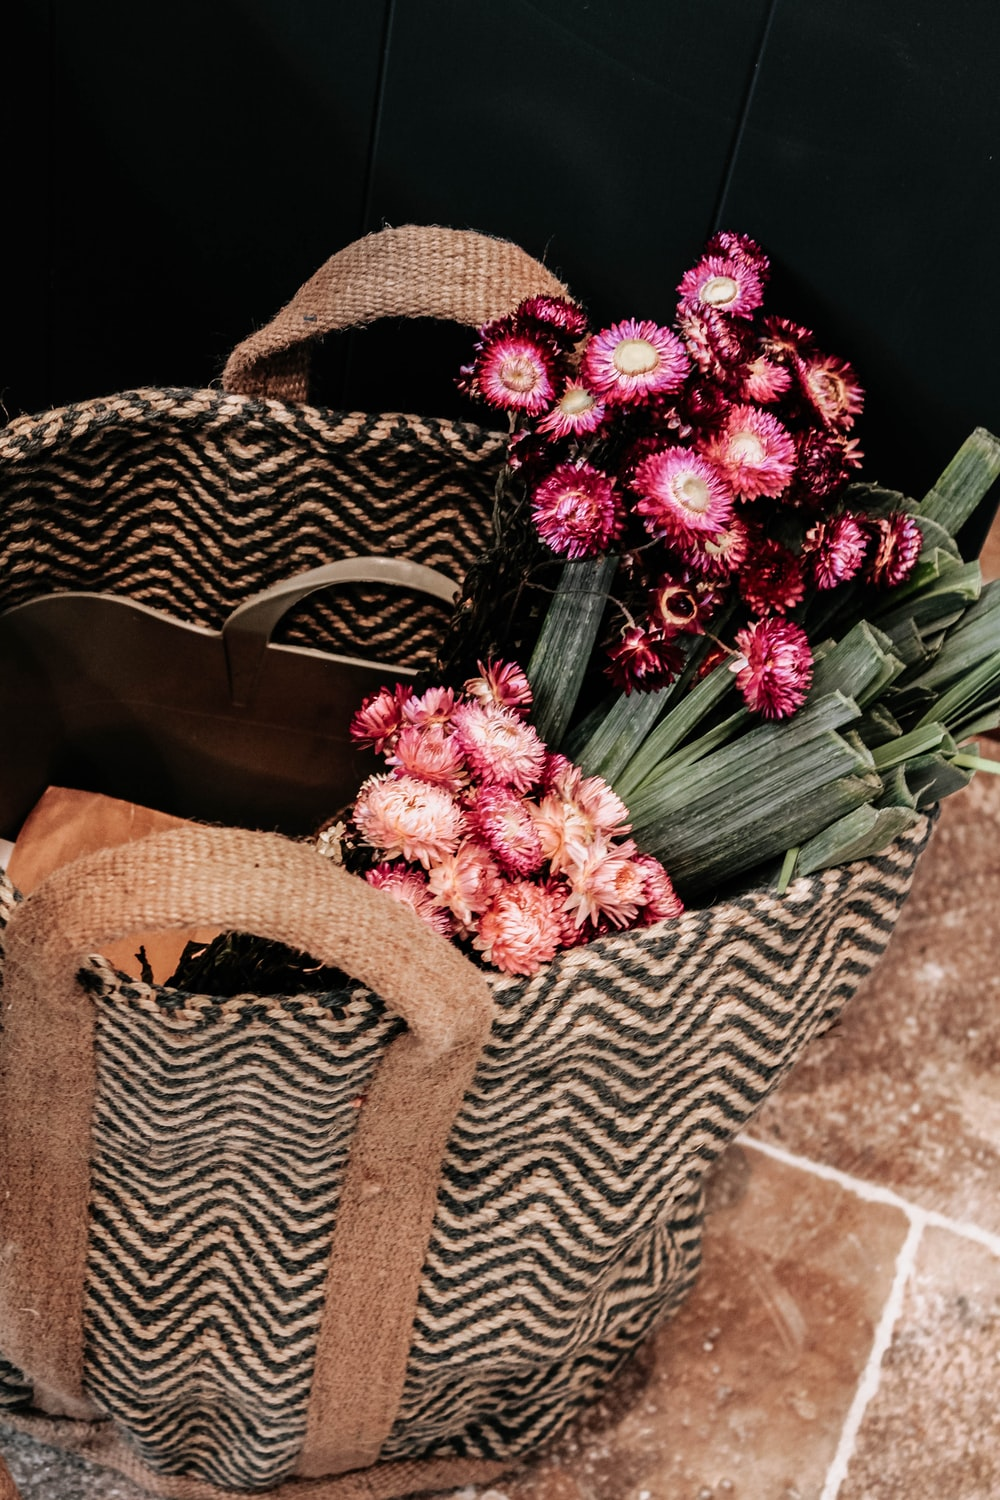 pink and white flower bouquet on brown woven basket